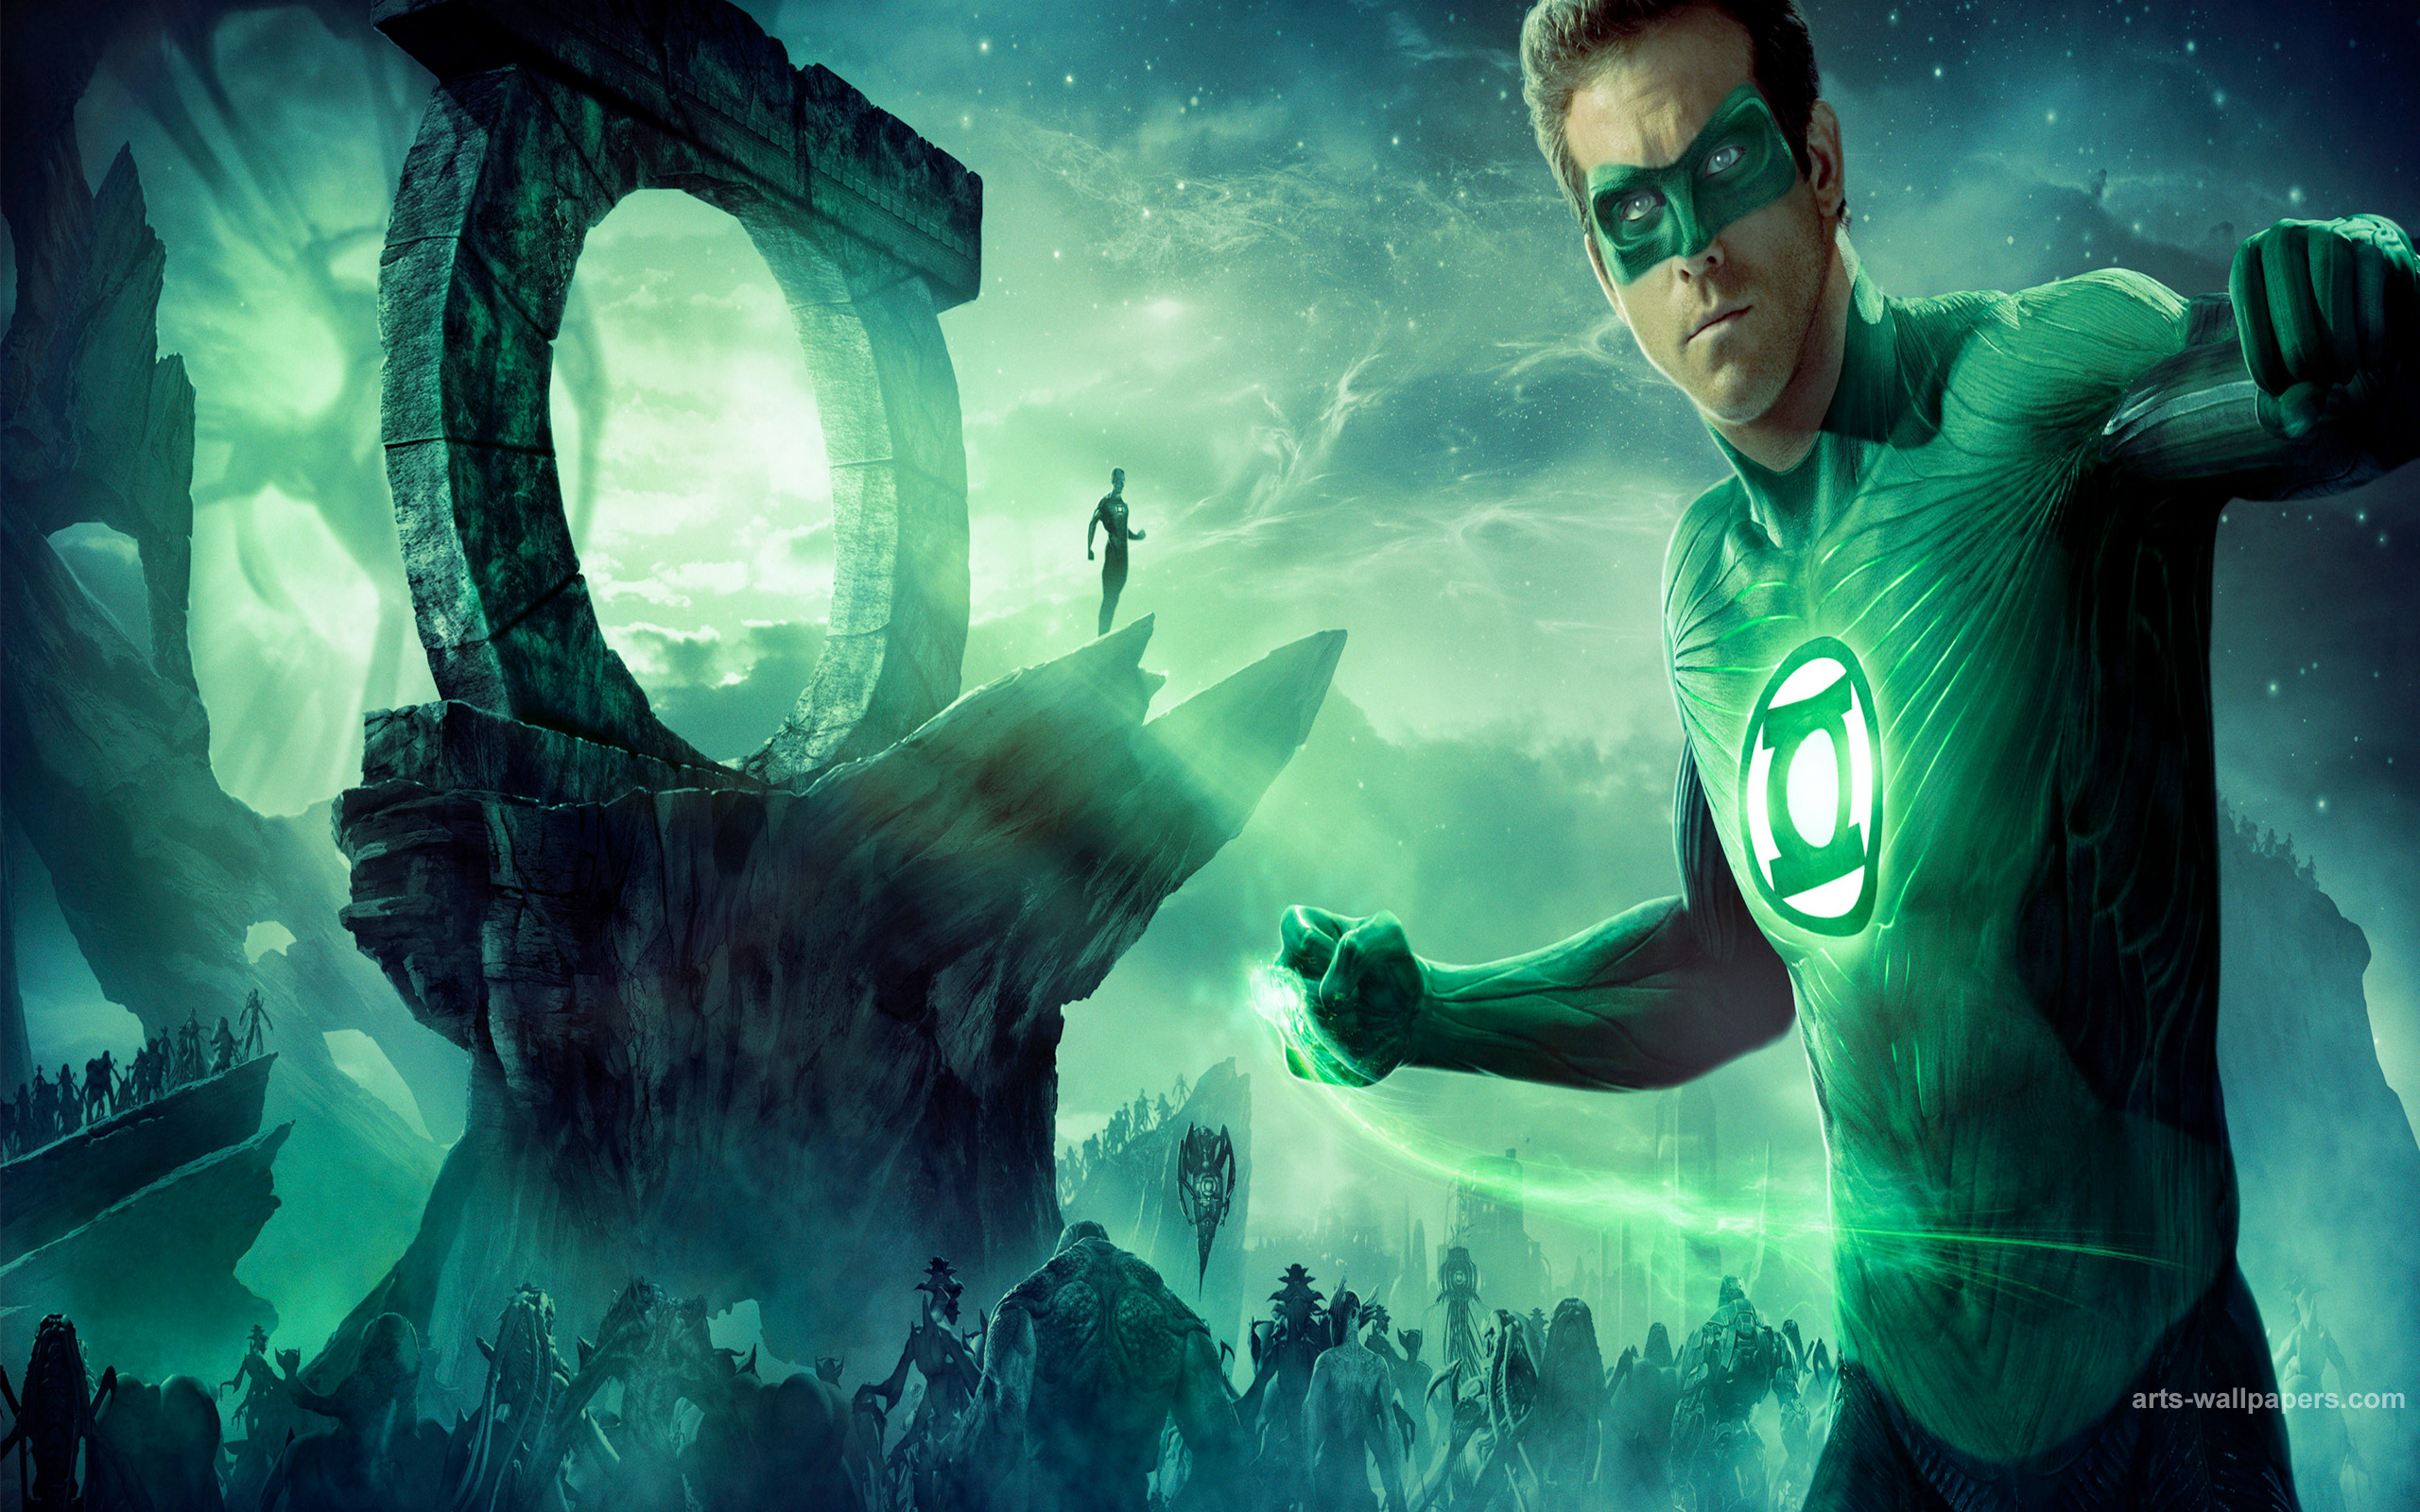 Green Lantern 2011 Wallpaper Poster HD Widescreen Movie Desktop 2560x1600